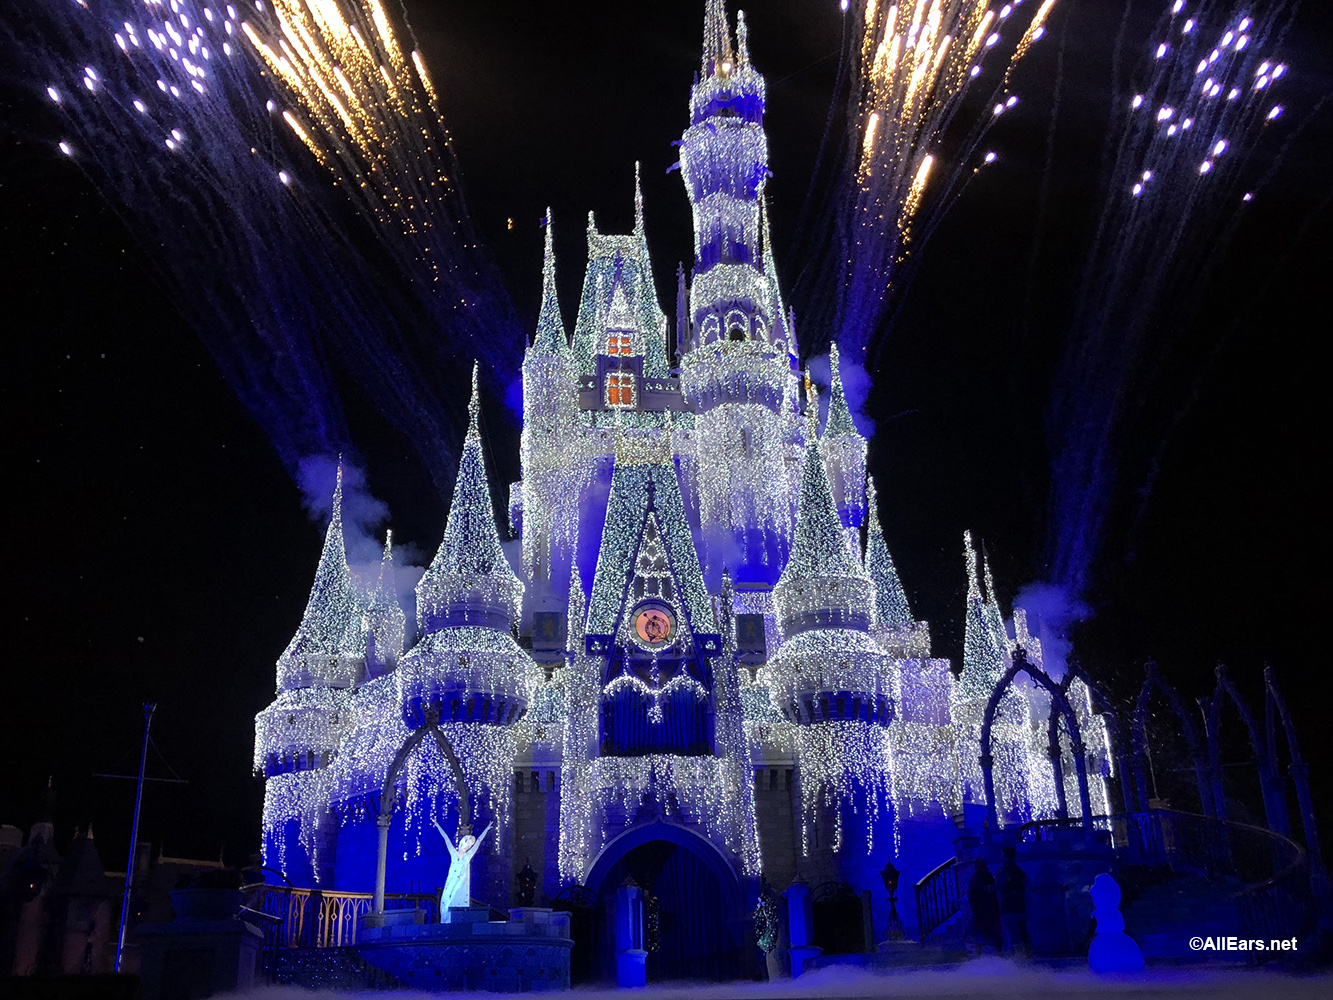 ... Disney World vacations during the holidays. Mickey's Very Merry Christmas Party